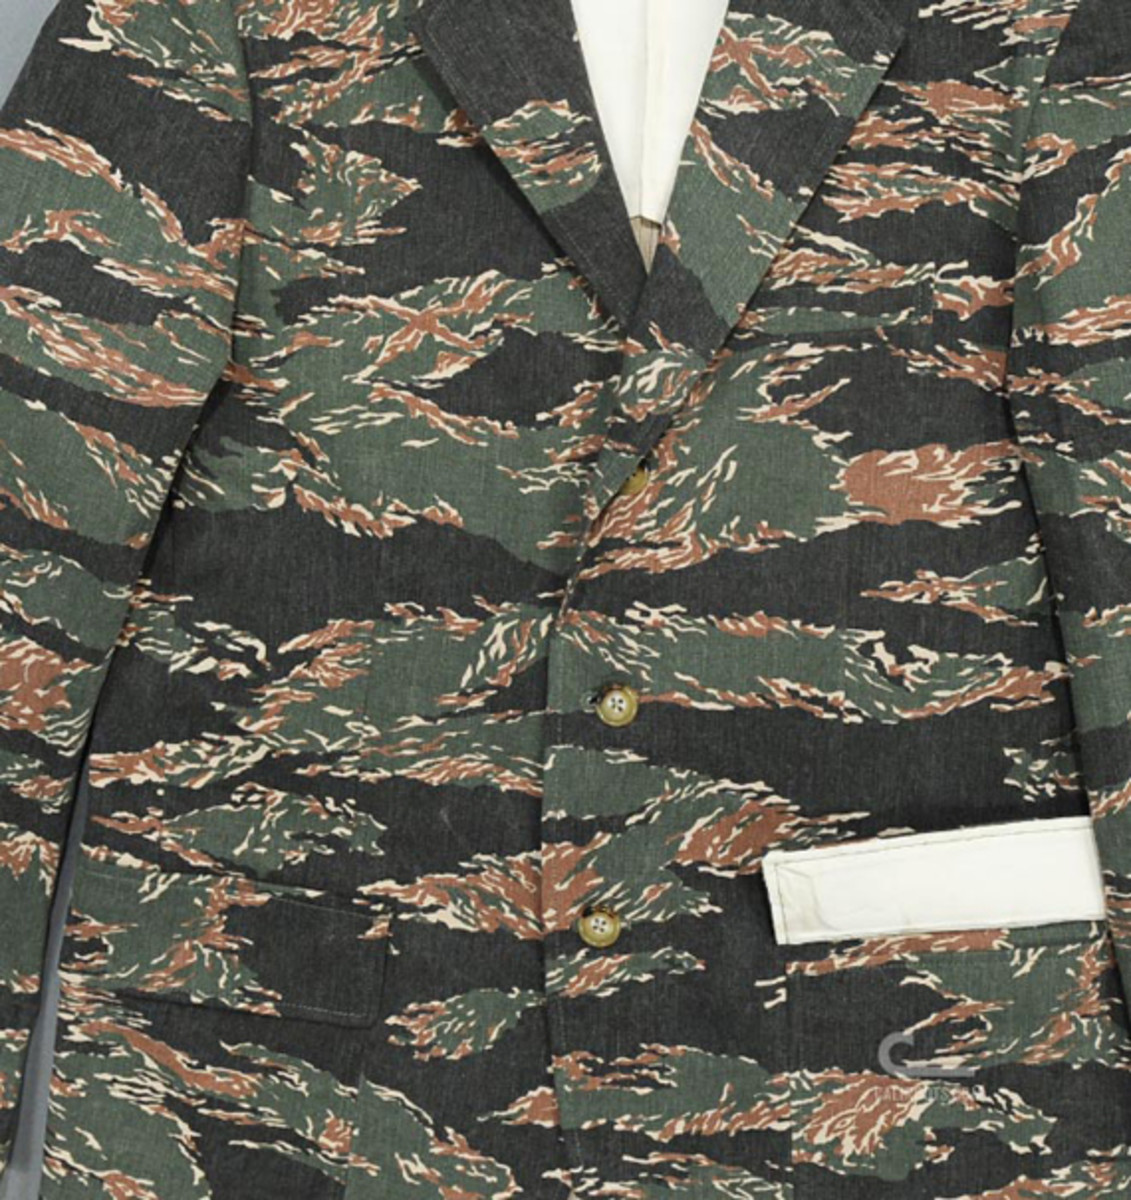 mr-bathing-ape-3-button-jacket-tiger-camouflage-10